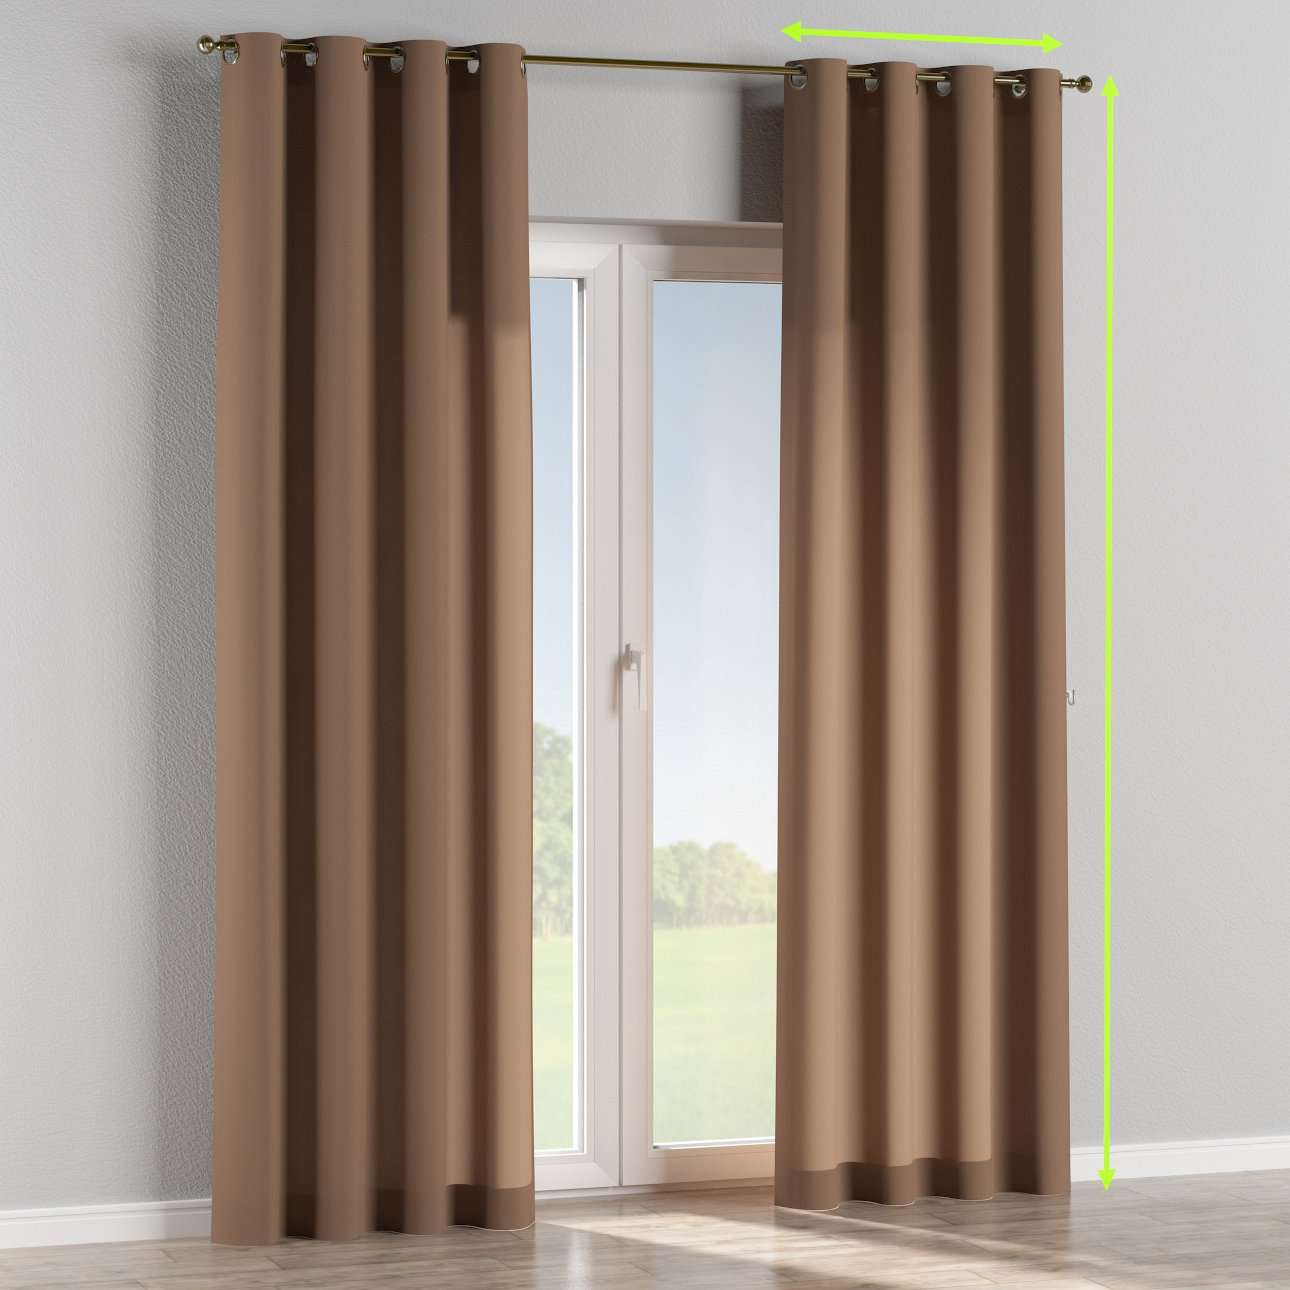 Eyelet lined curtains in collection Fleur , fabric: 139-15